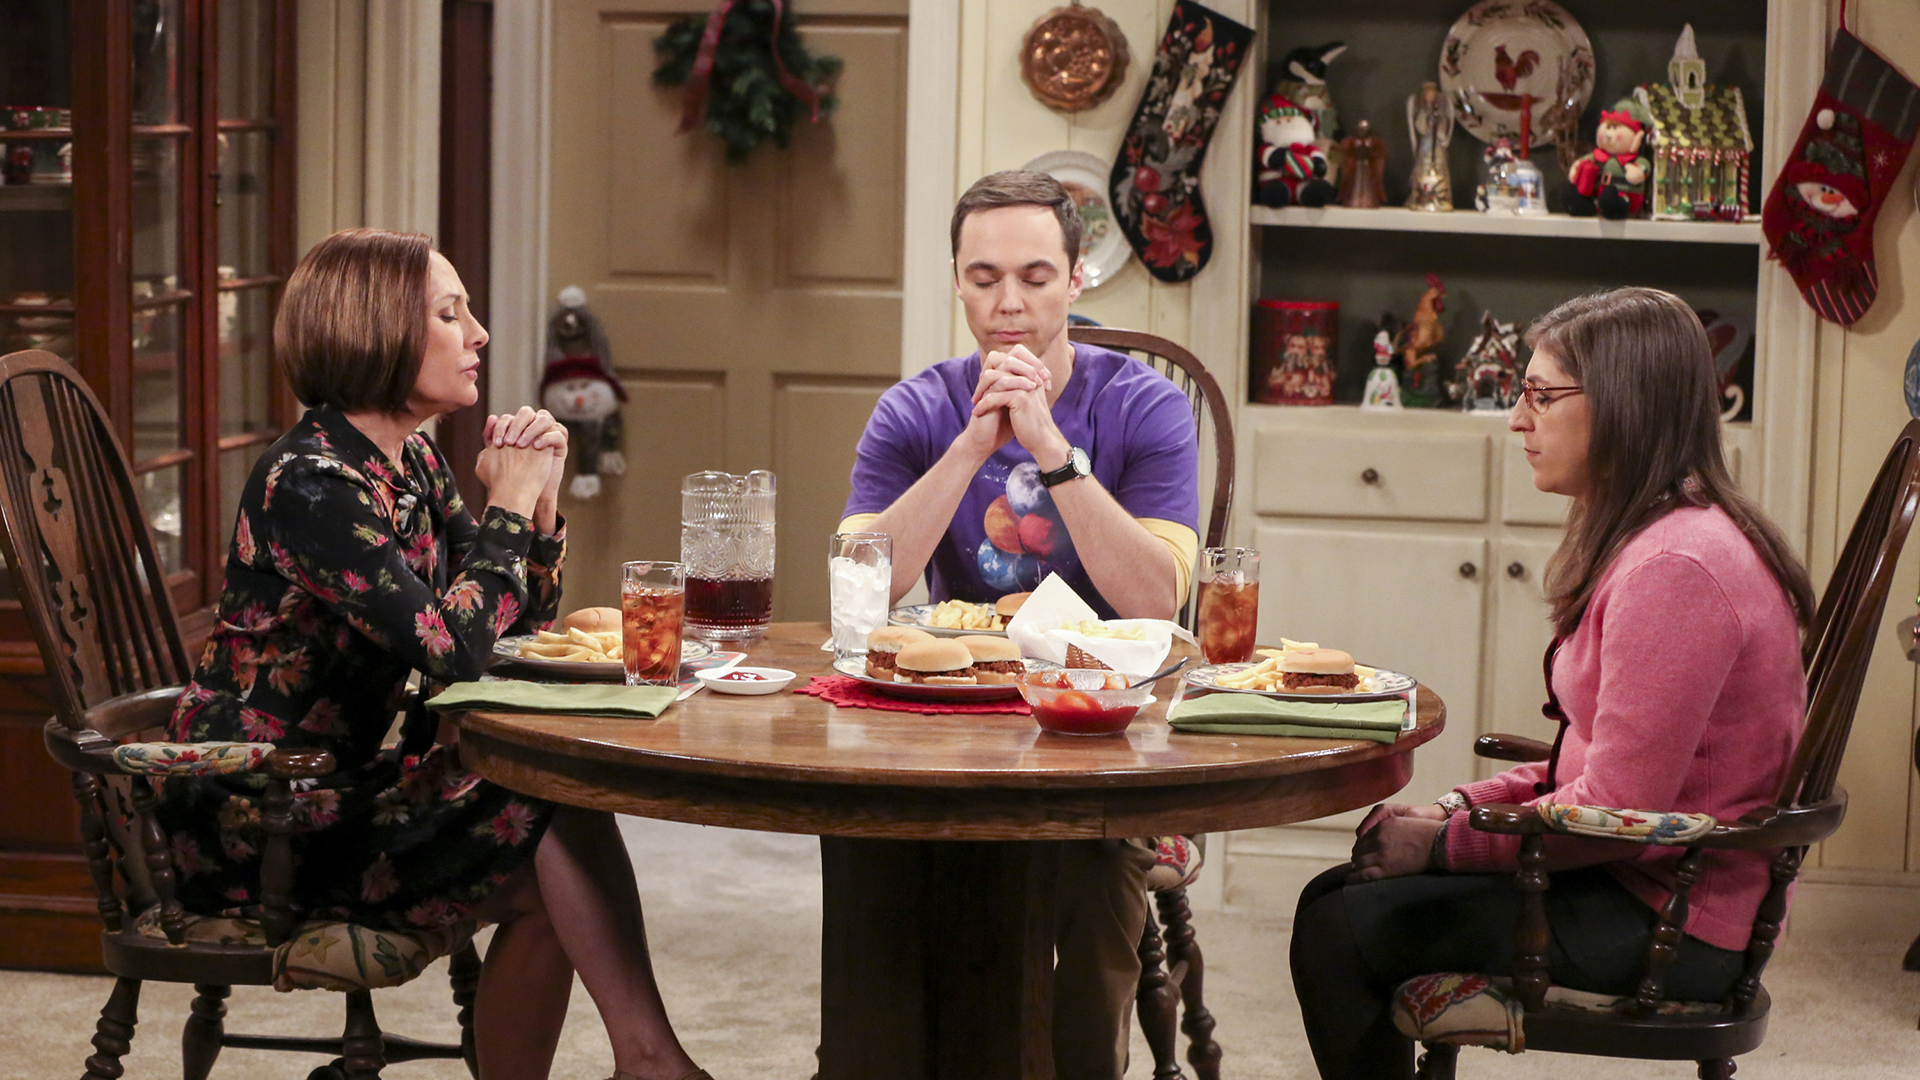 Mary, Sheldon, and Amy say grace around the holiday dinner table.